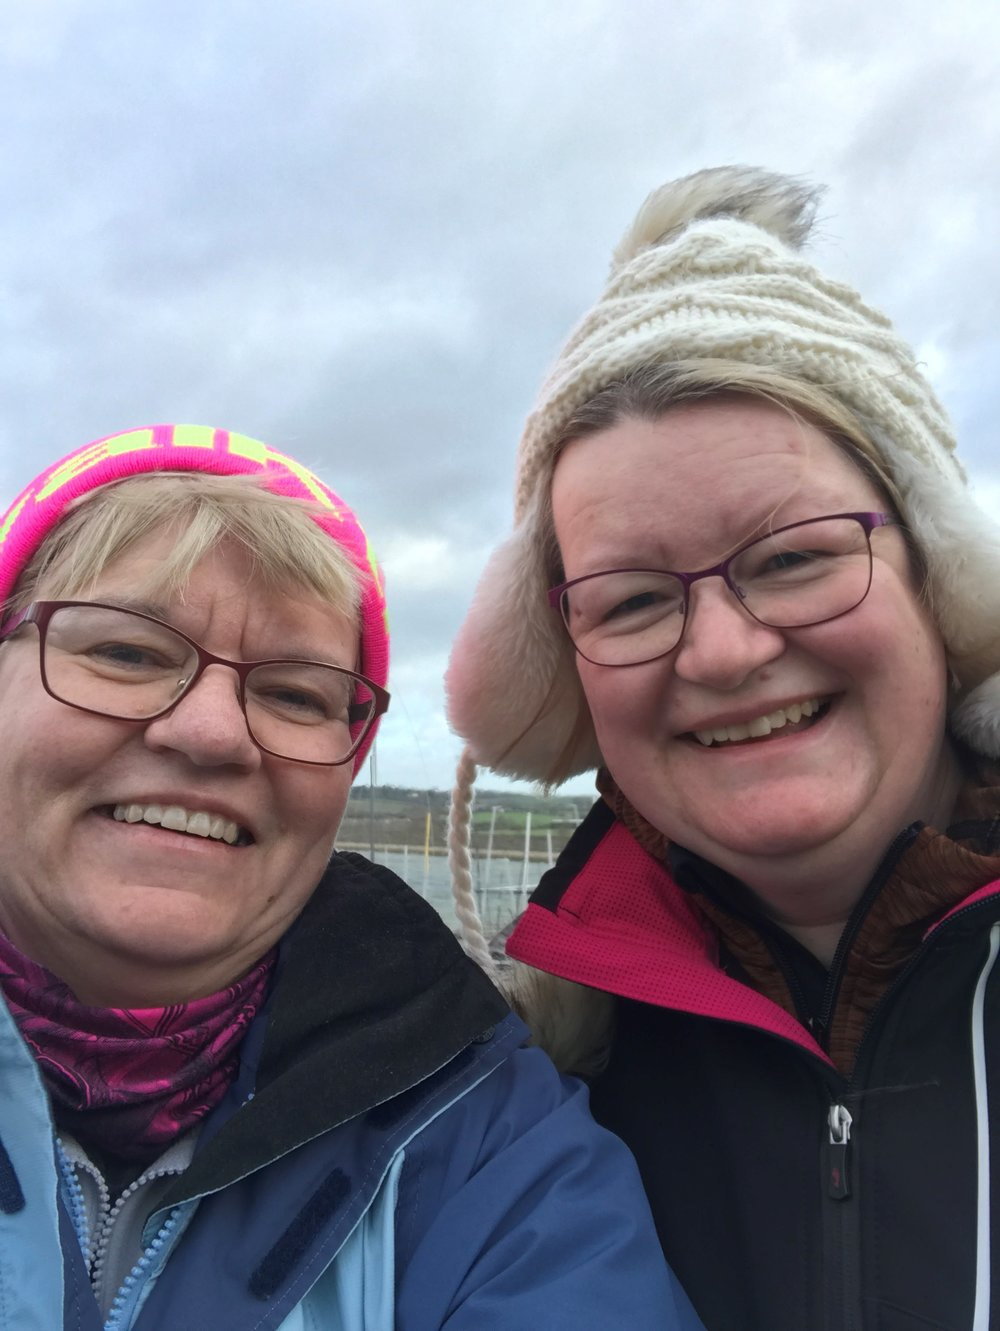 Pat Hipkiss Jan 2019 image 3 first proper training walk with Steph barrett at Draycote Water 27th January 2019.jpg